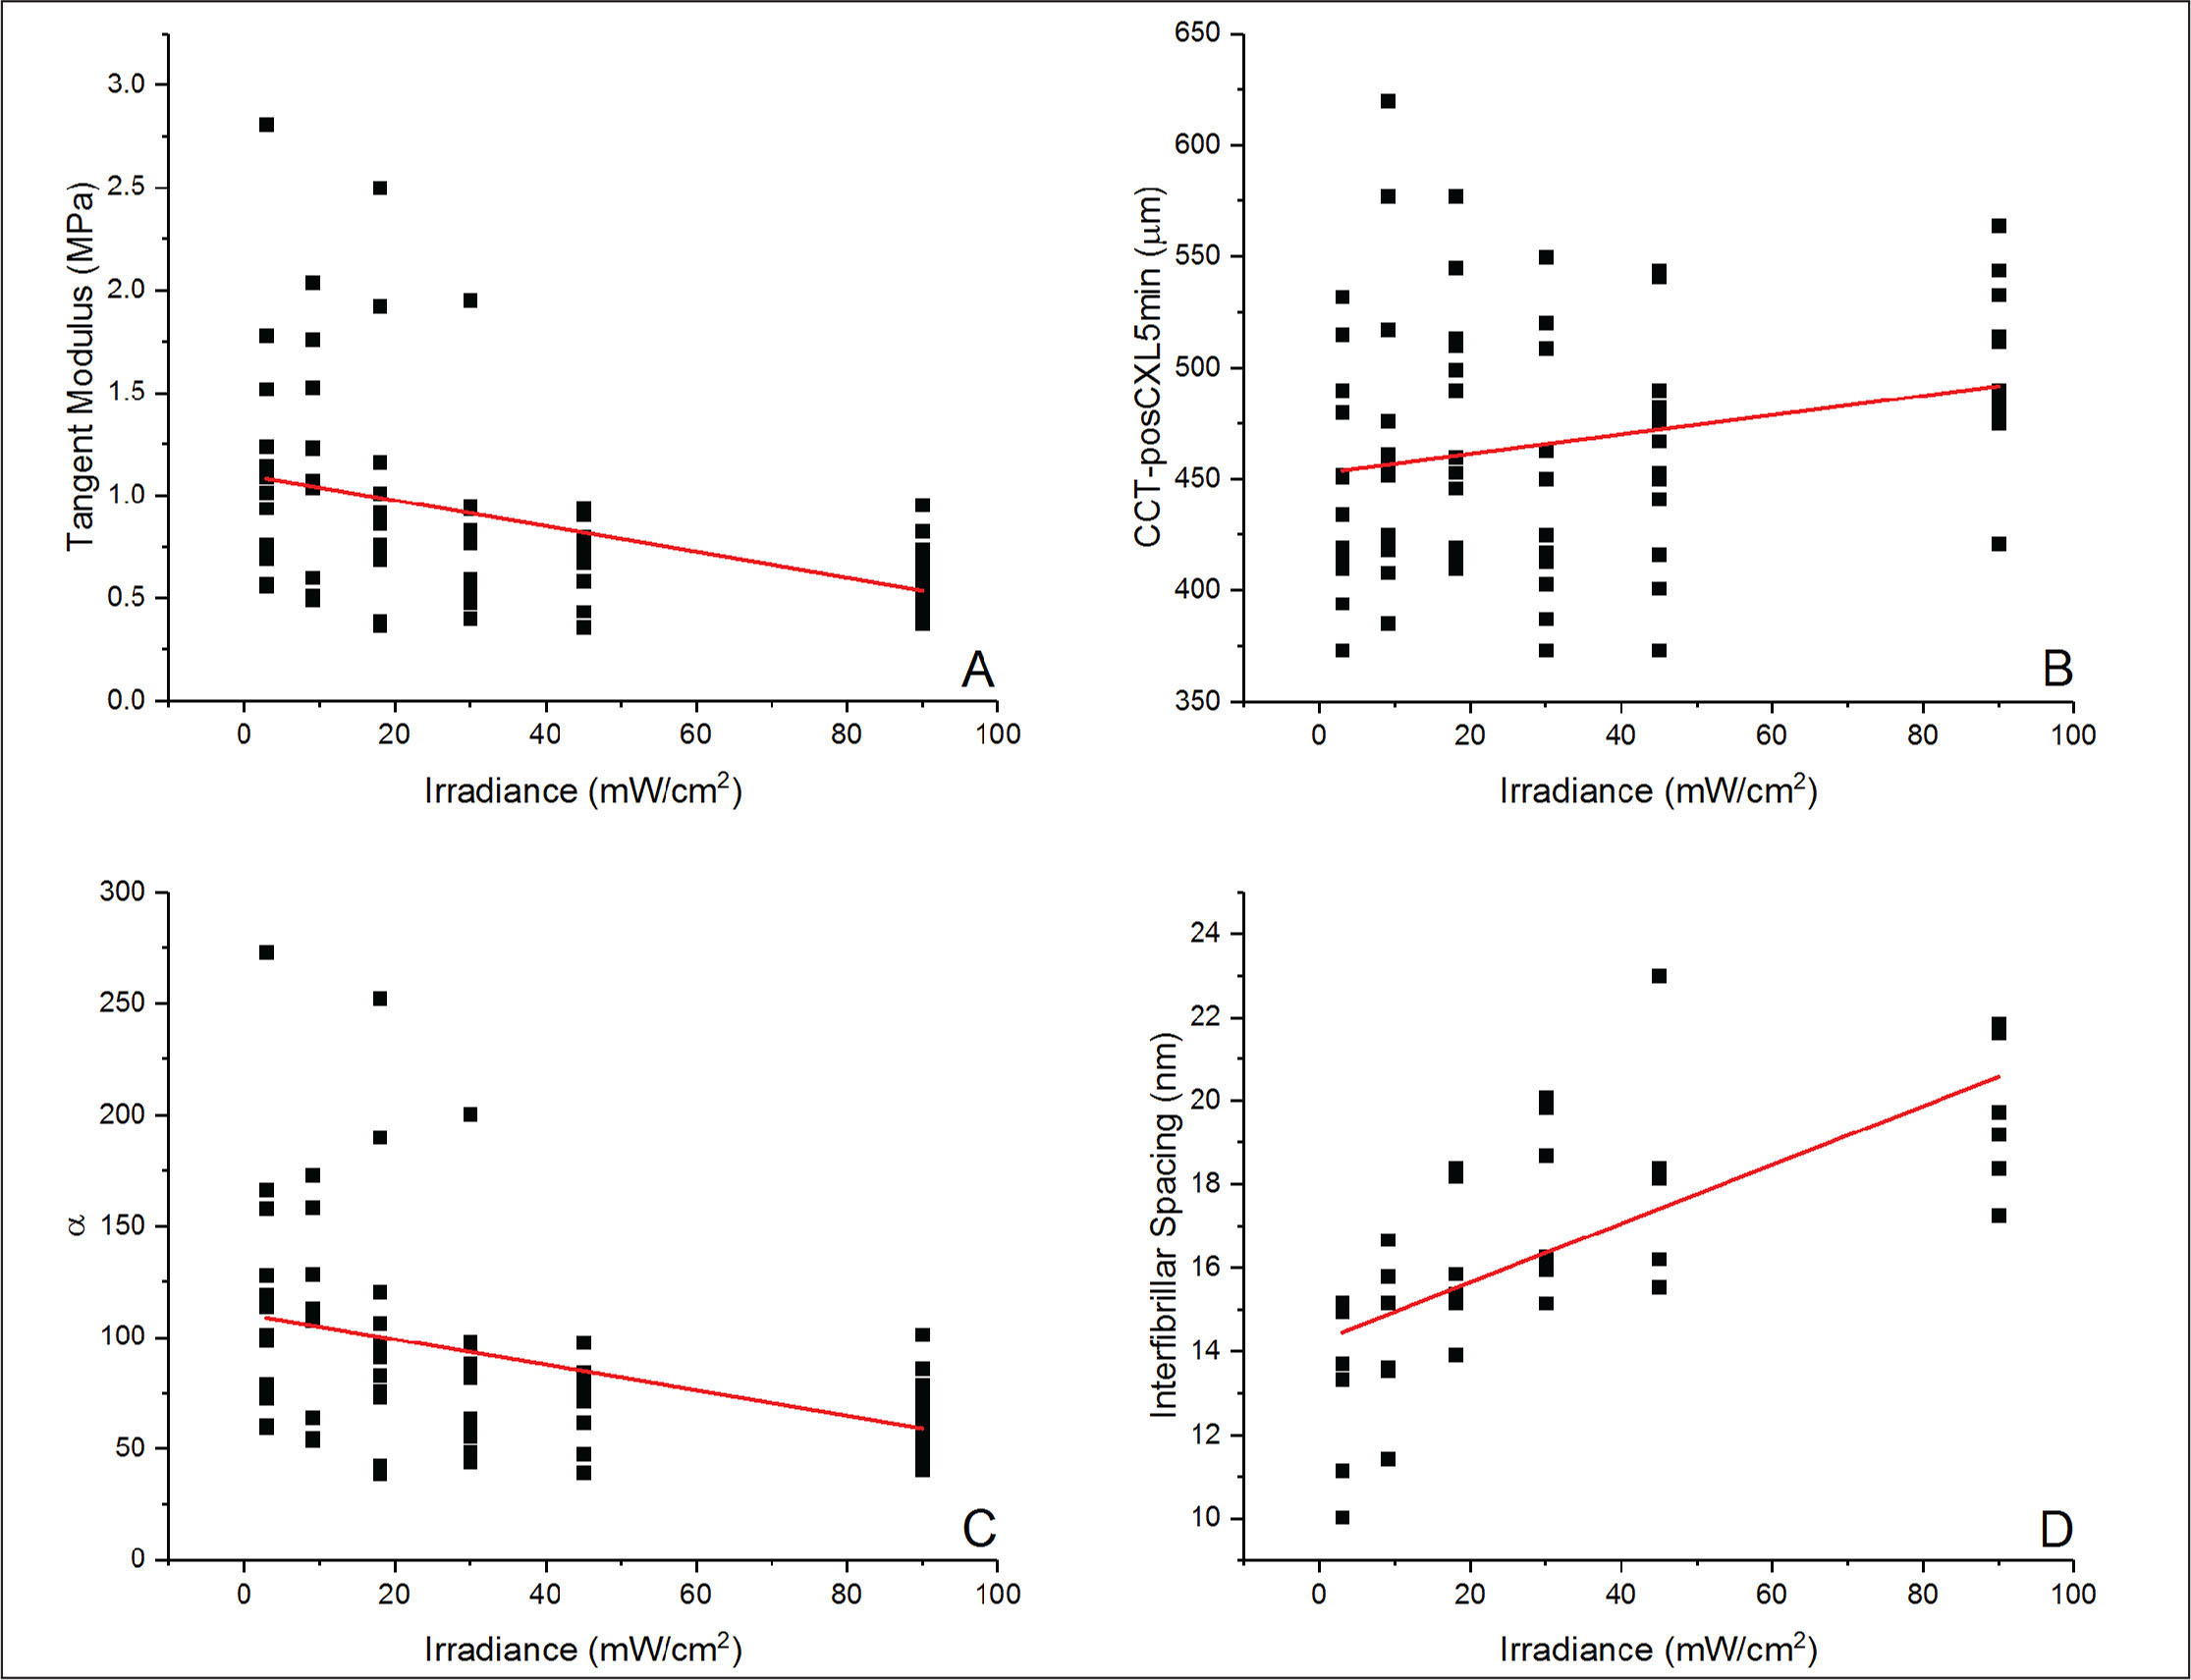 Regression analysis of irradiance vs tangent modulus, central corneal thickness at 5 minutes after corneal cross-linking (CCT-posCXL5min), material parameter α, and interfibrillar spacing.